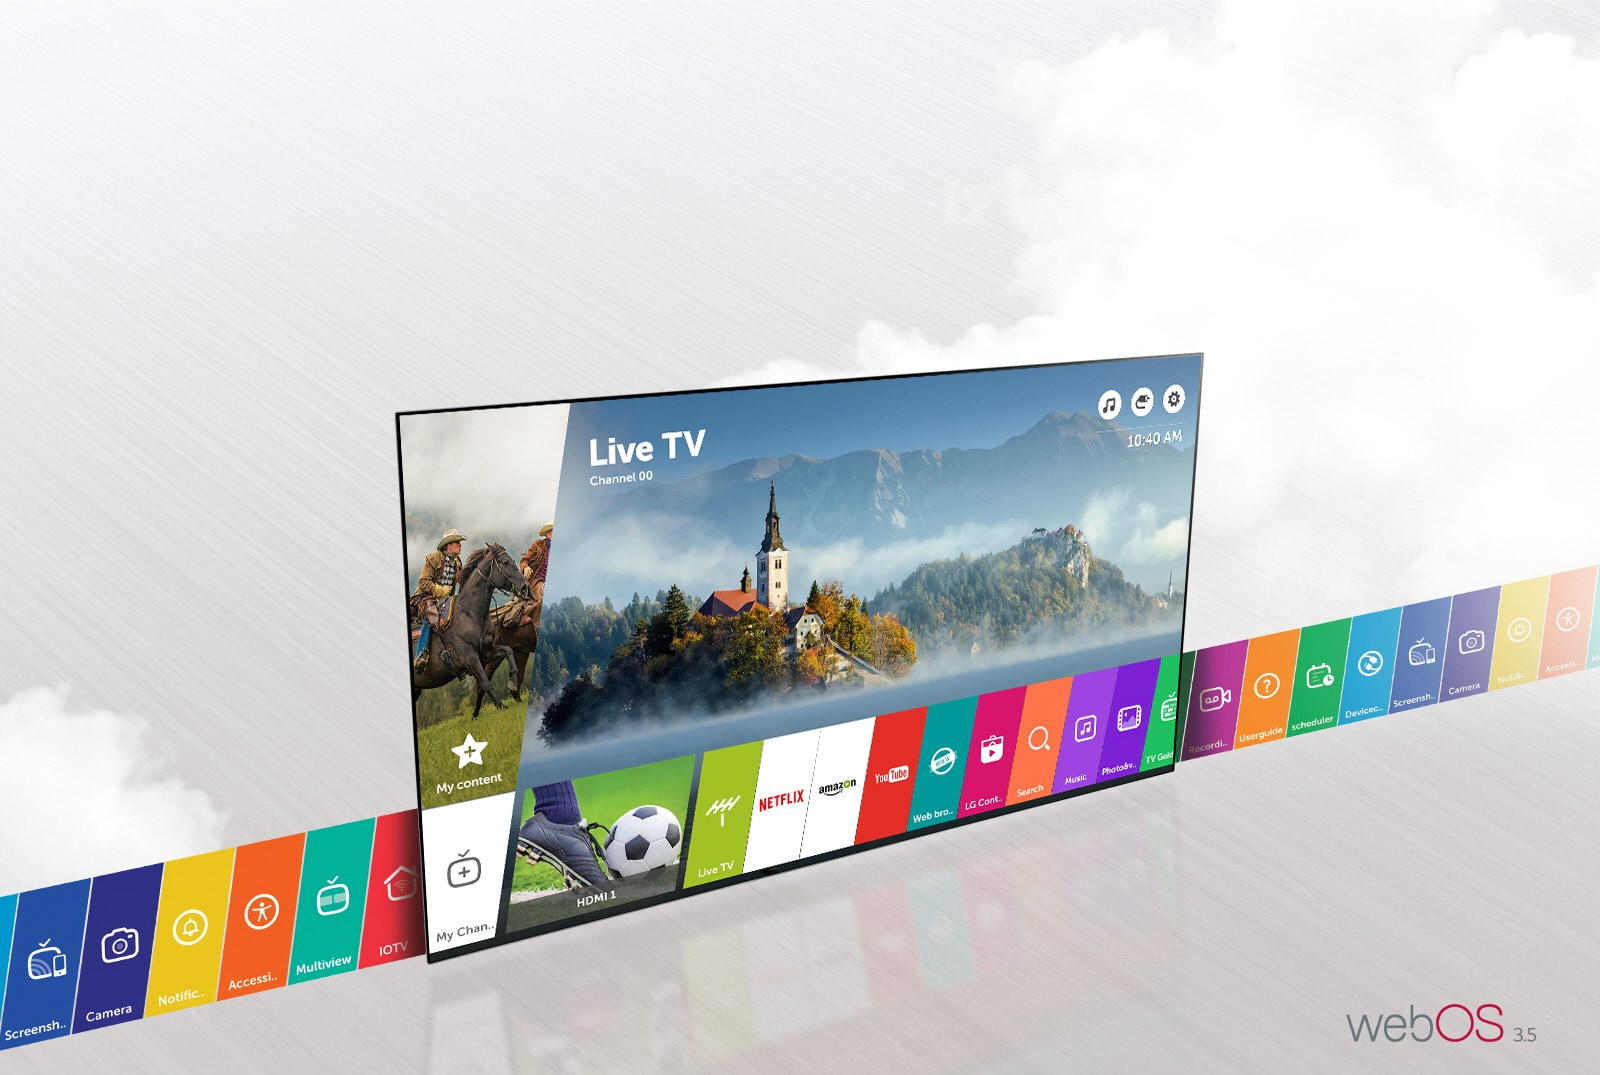 LG 43 LG Smart TV with webOS | LG Egypt